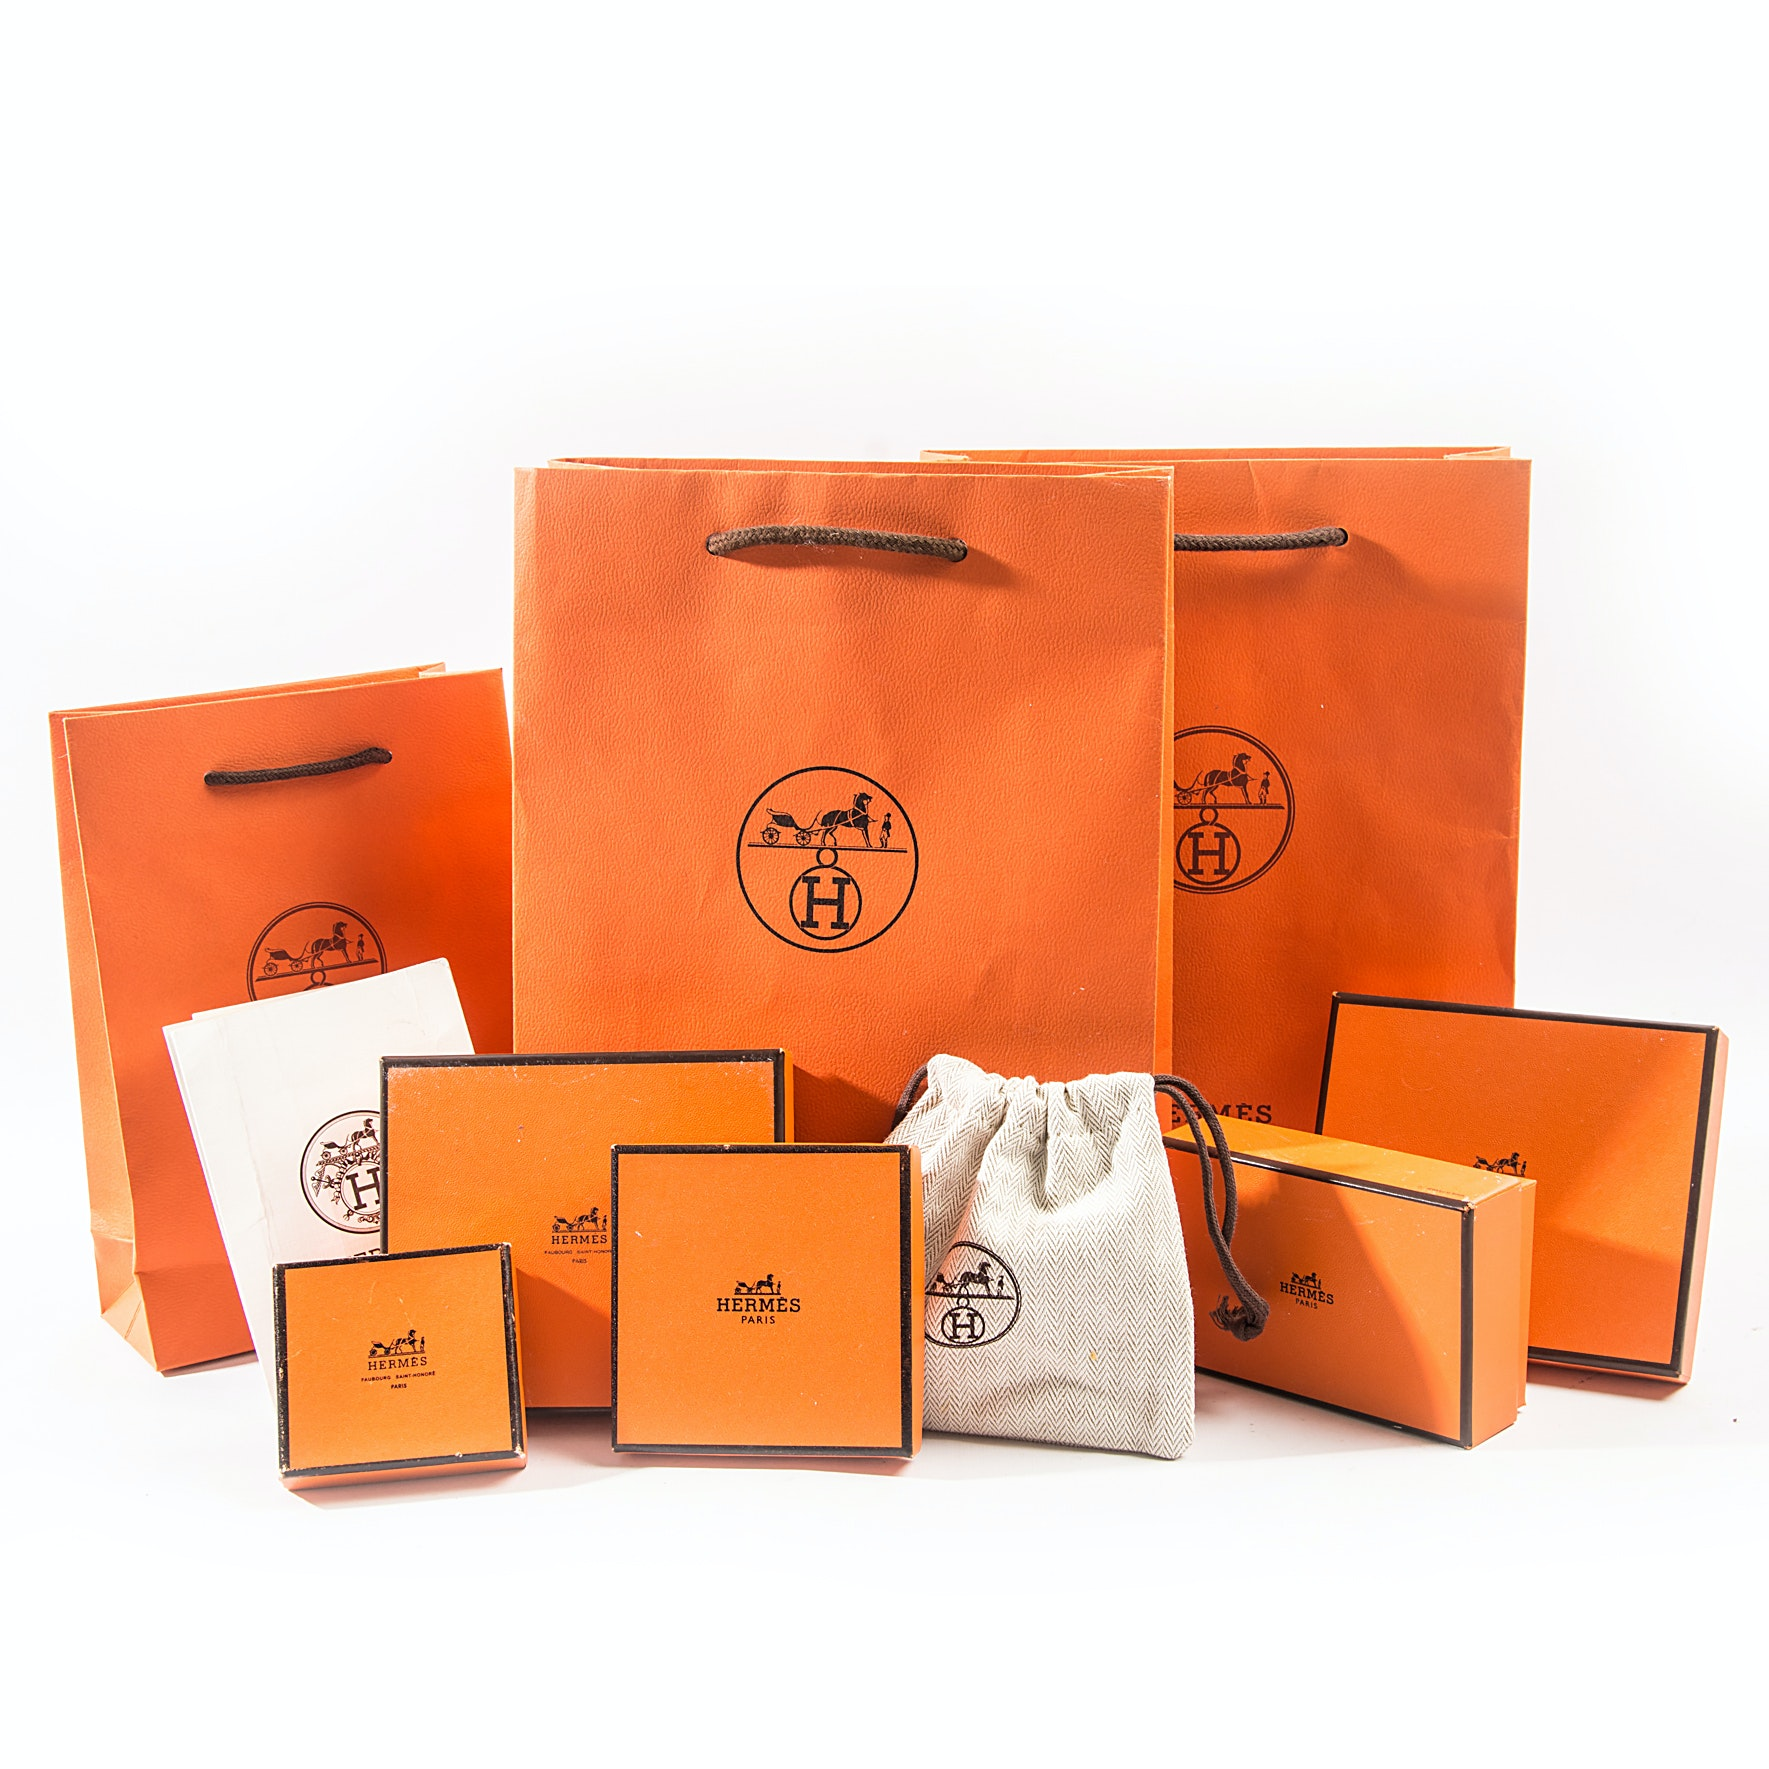 Hermès Boxes and Bags